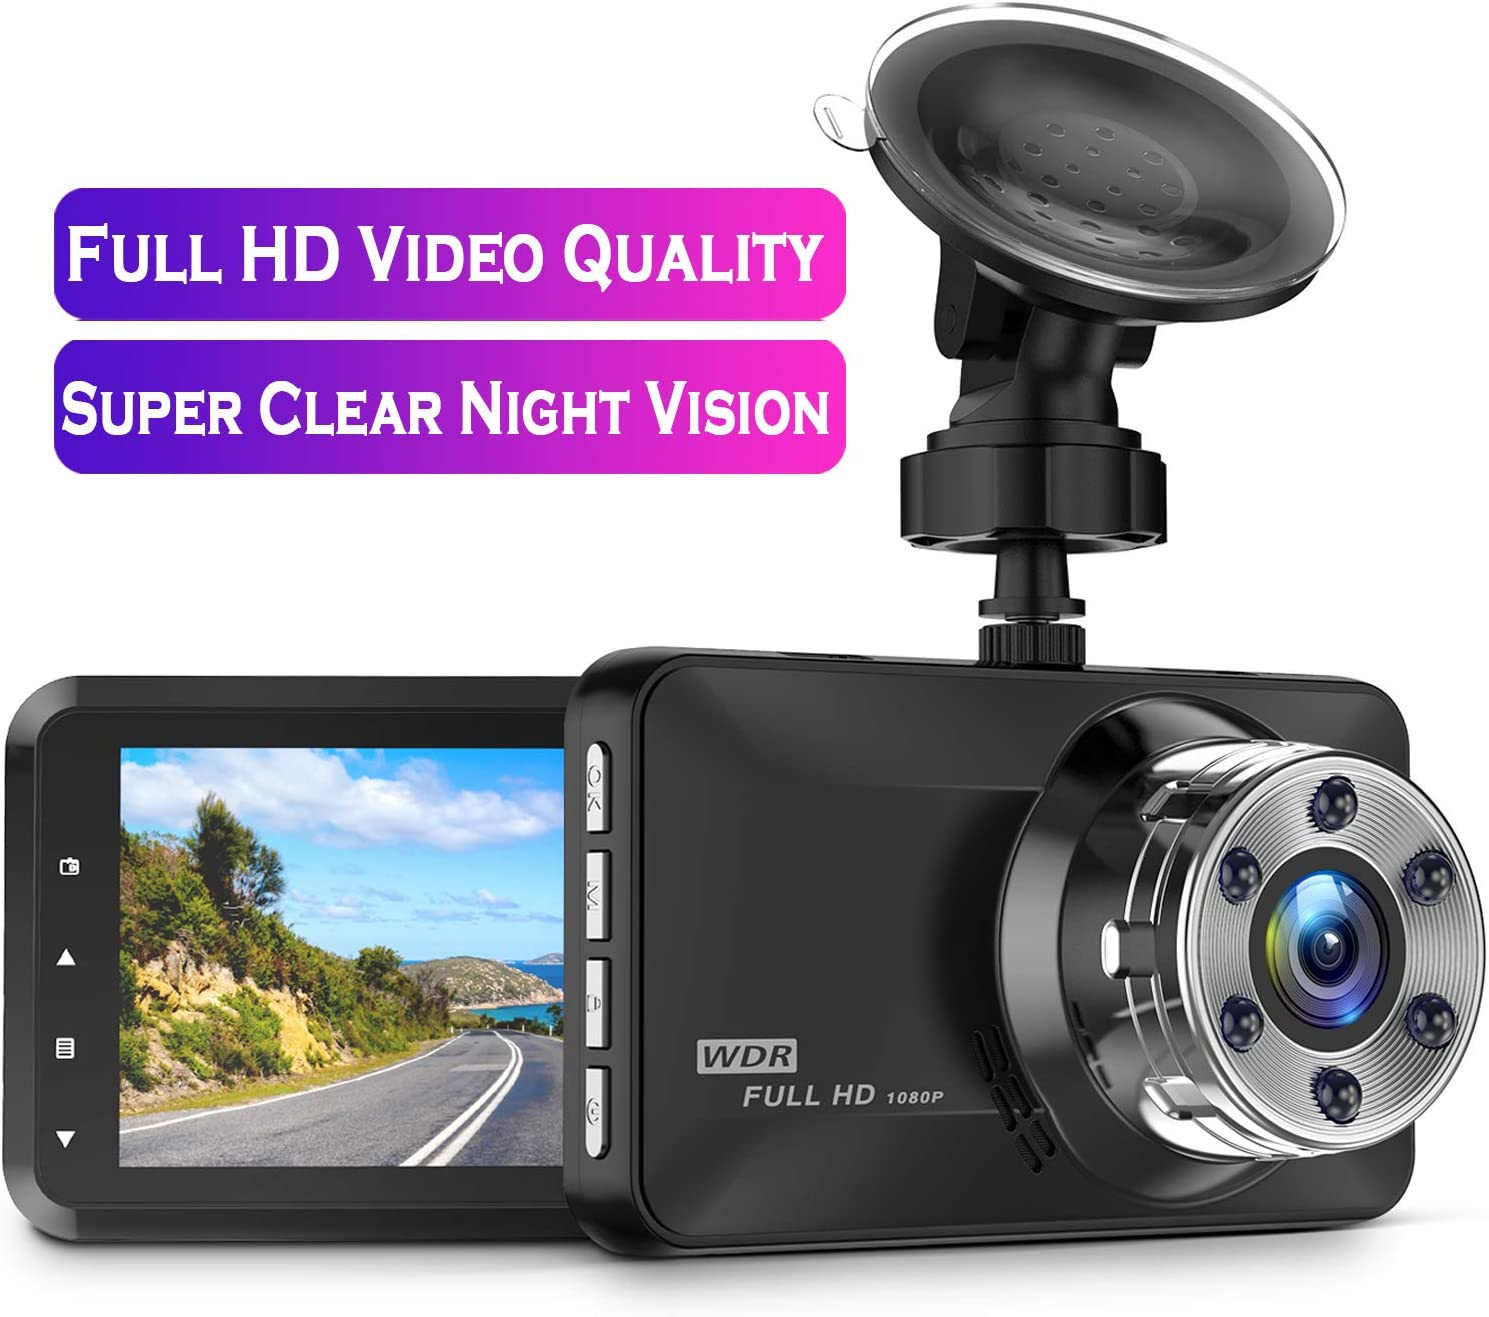 Dash Cam, Amuoc 1080P FHD DVR Car Driving Recorder 3 Inch LCD Screen 170° Wide Angle, G-Sensor, WDR, Parking Monitor, Loop Recording, Motion Detection